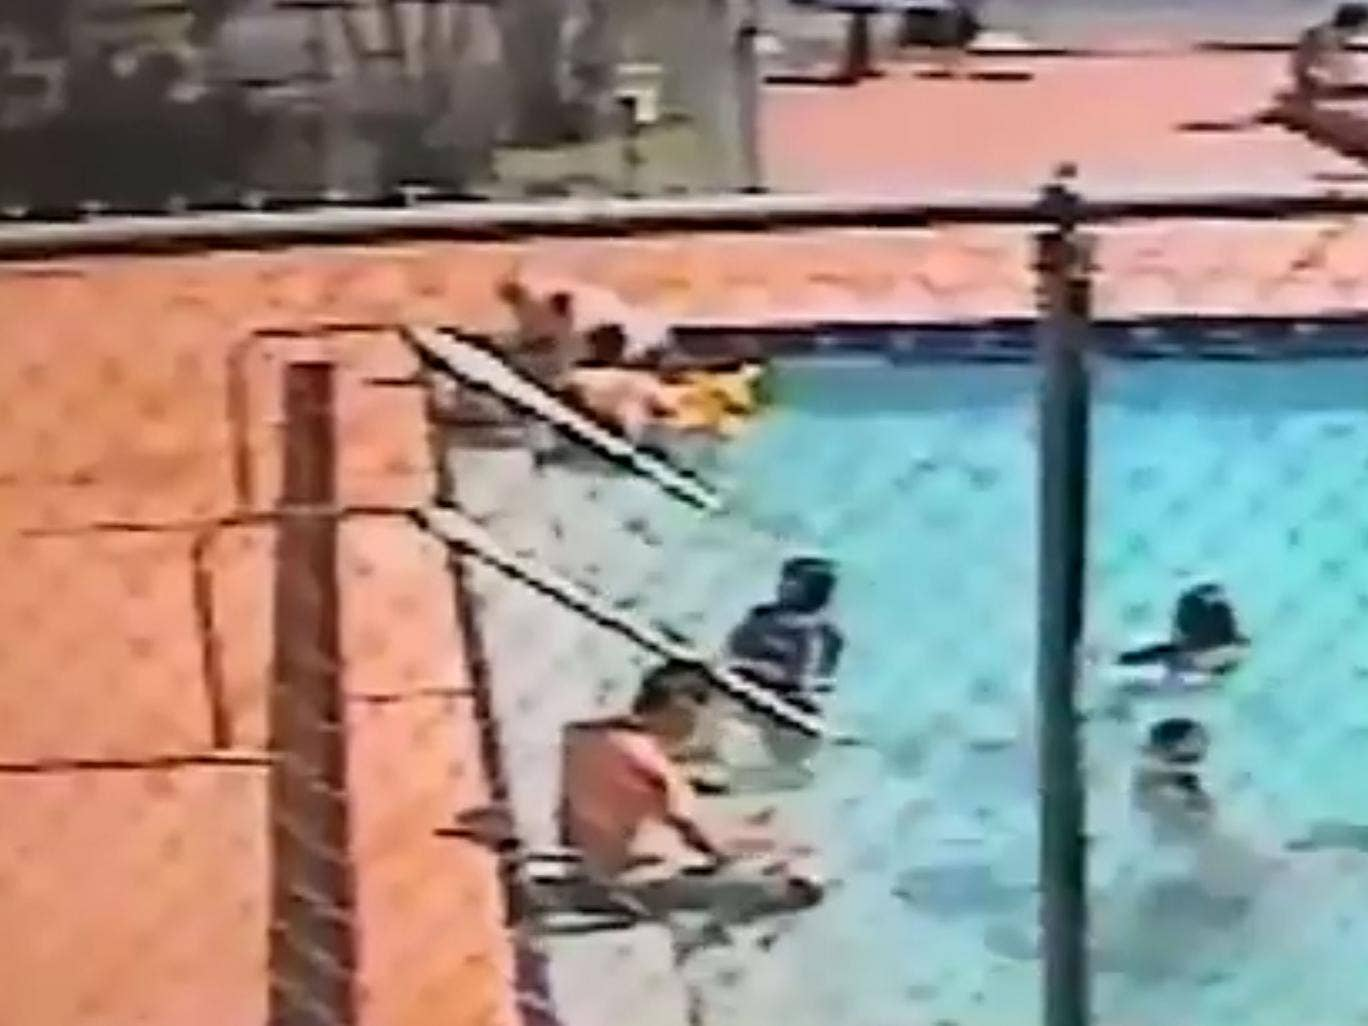 A number of people were swimming in the pool in Hialeah when the incident occurred